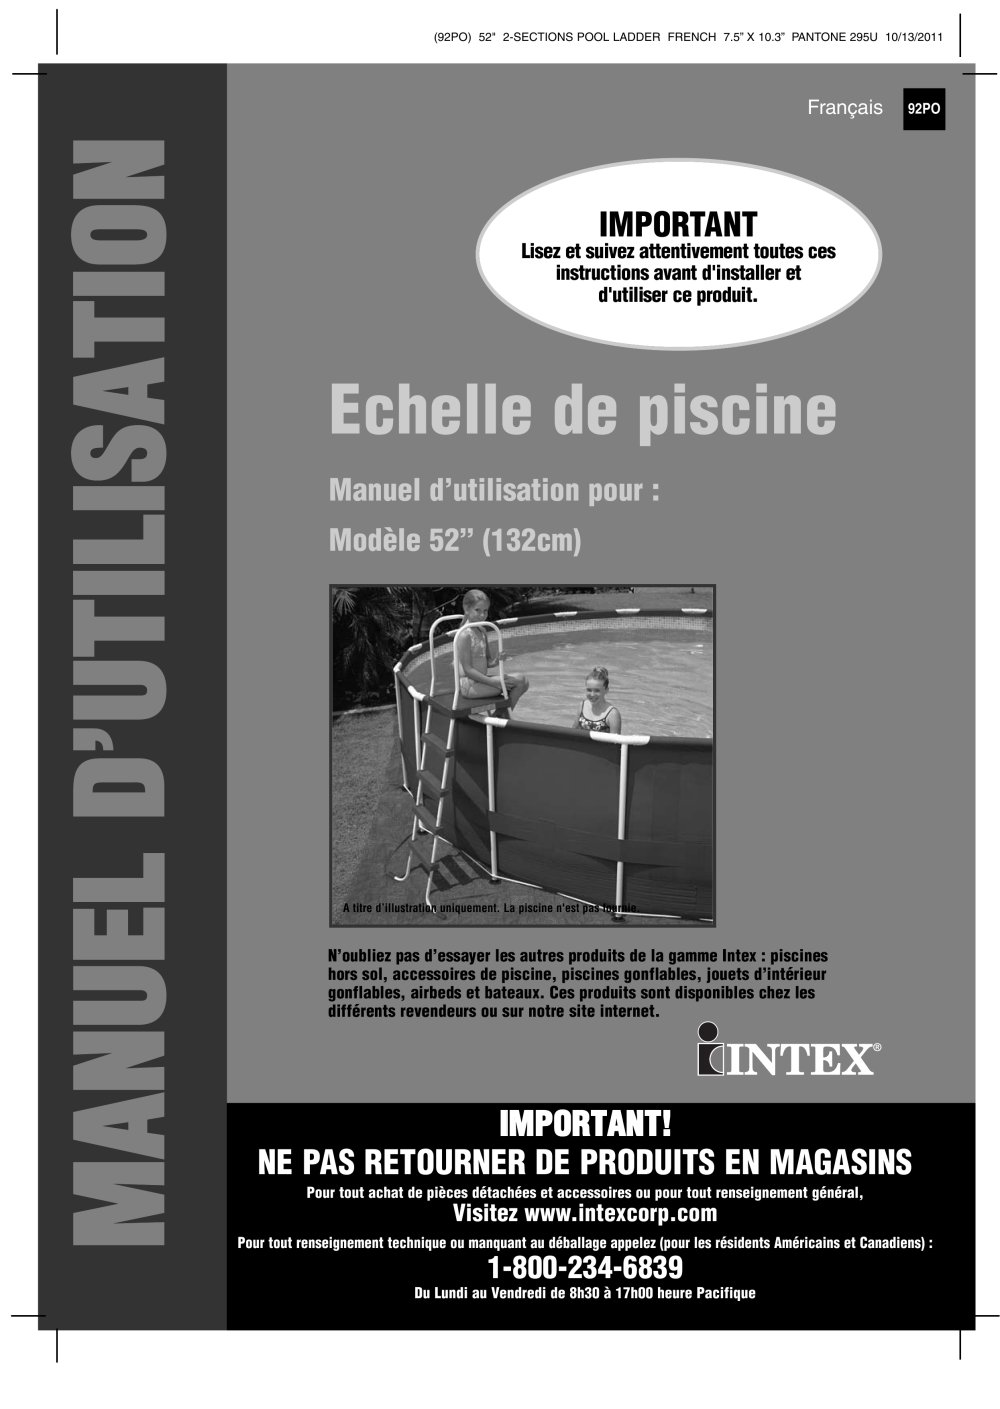 Echelle de piscine - INTEX - Catalogue PDF   Documentation   Brochure b124f78a030